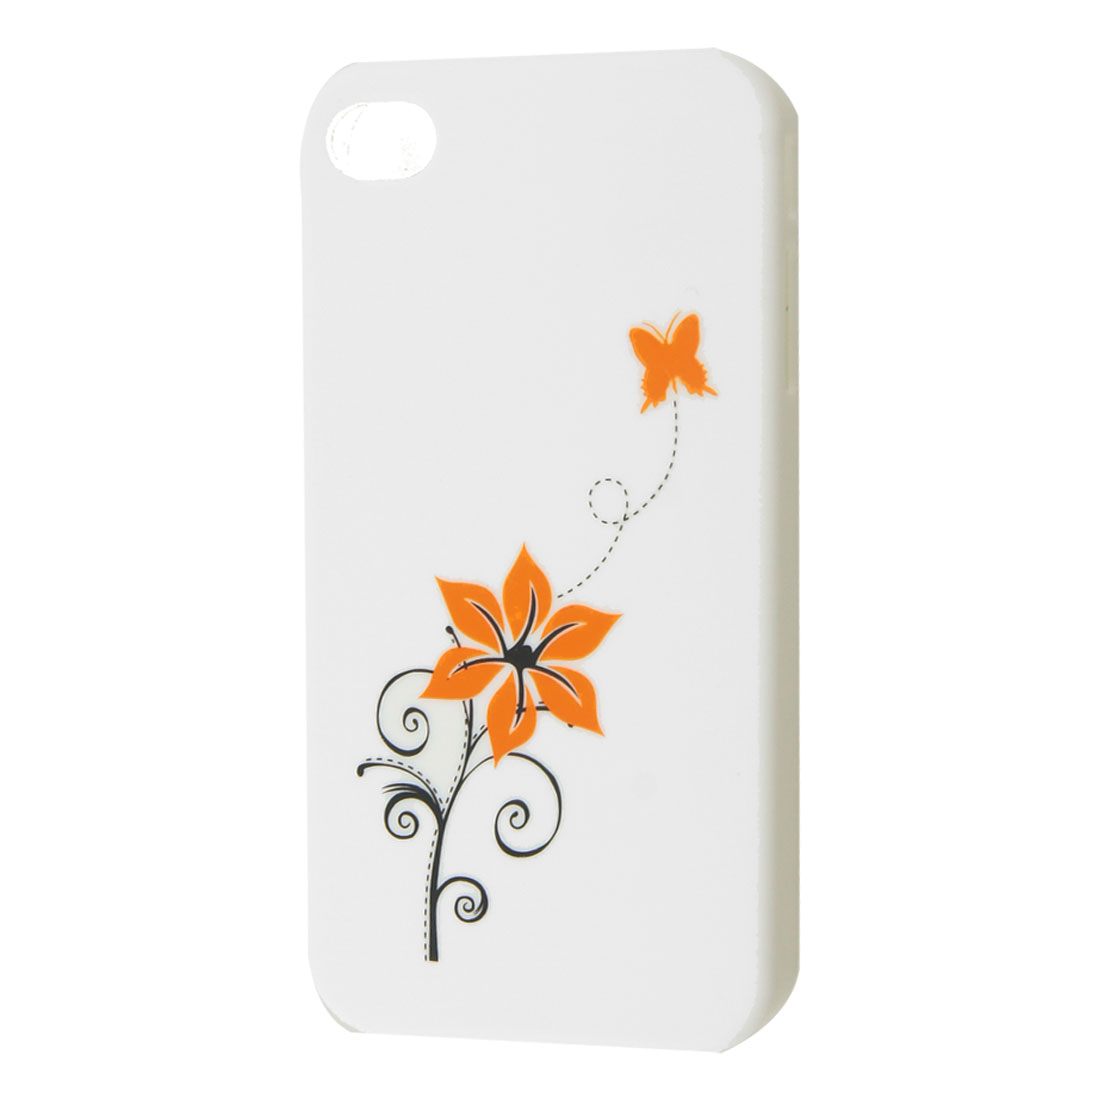 White Hard Plastic Flower Print Back Case for iPhone 4 4G 4GS